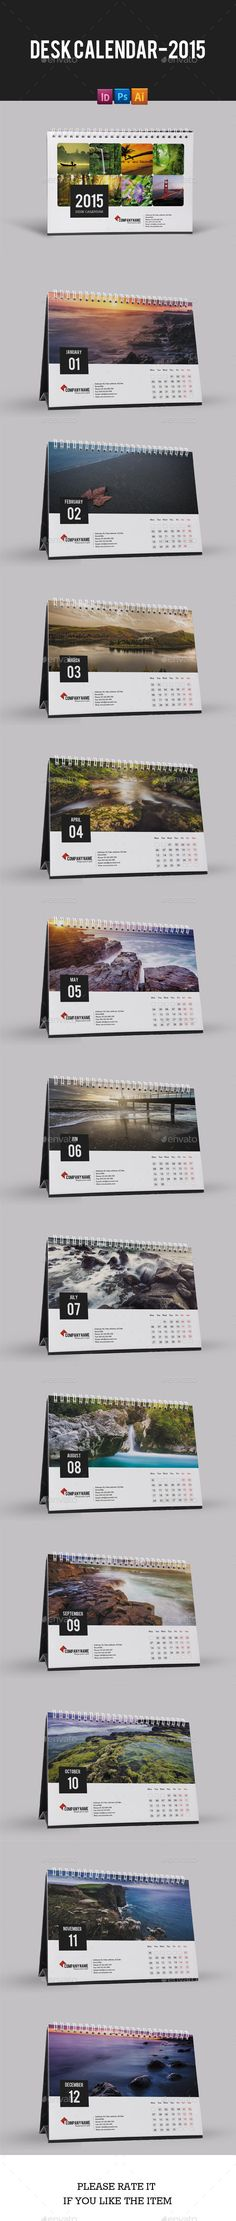 Desk Calendar for 2015 - Calendars Stationery